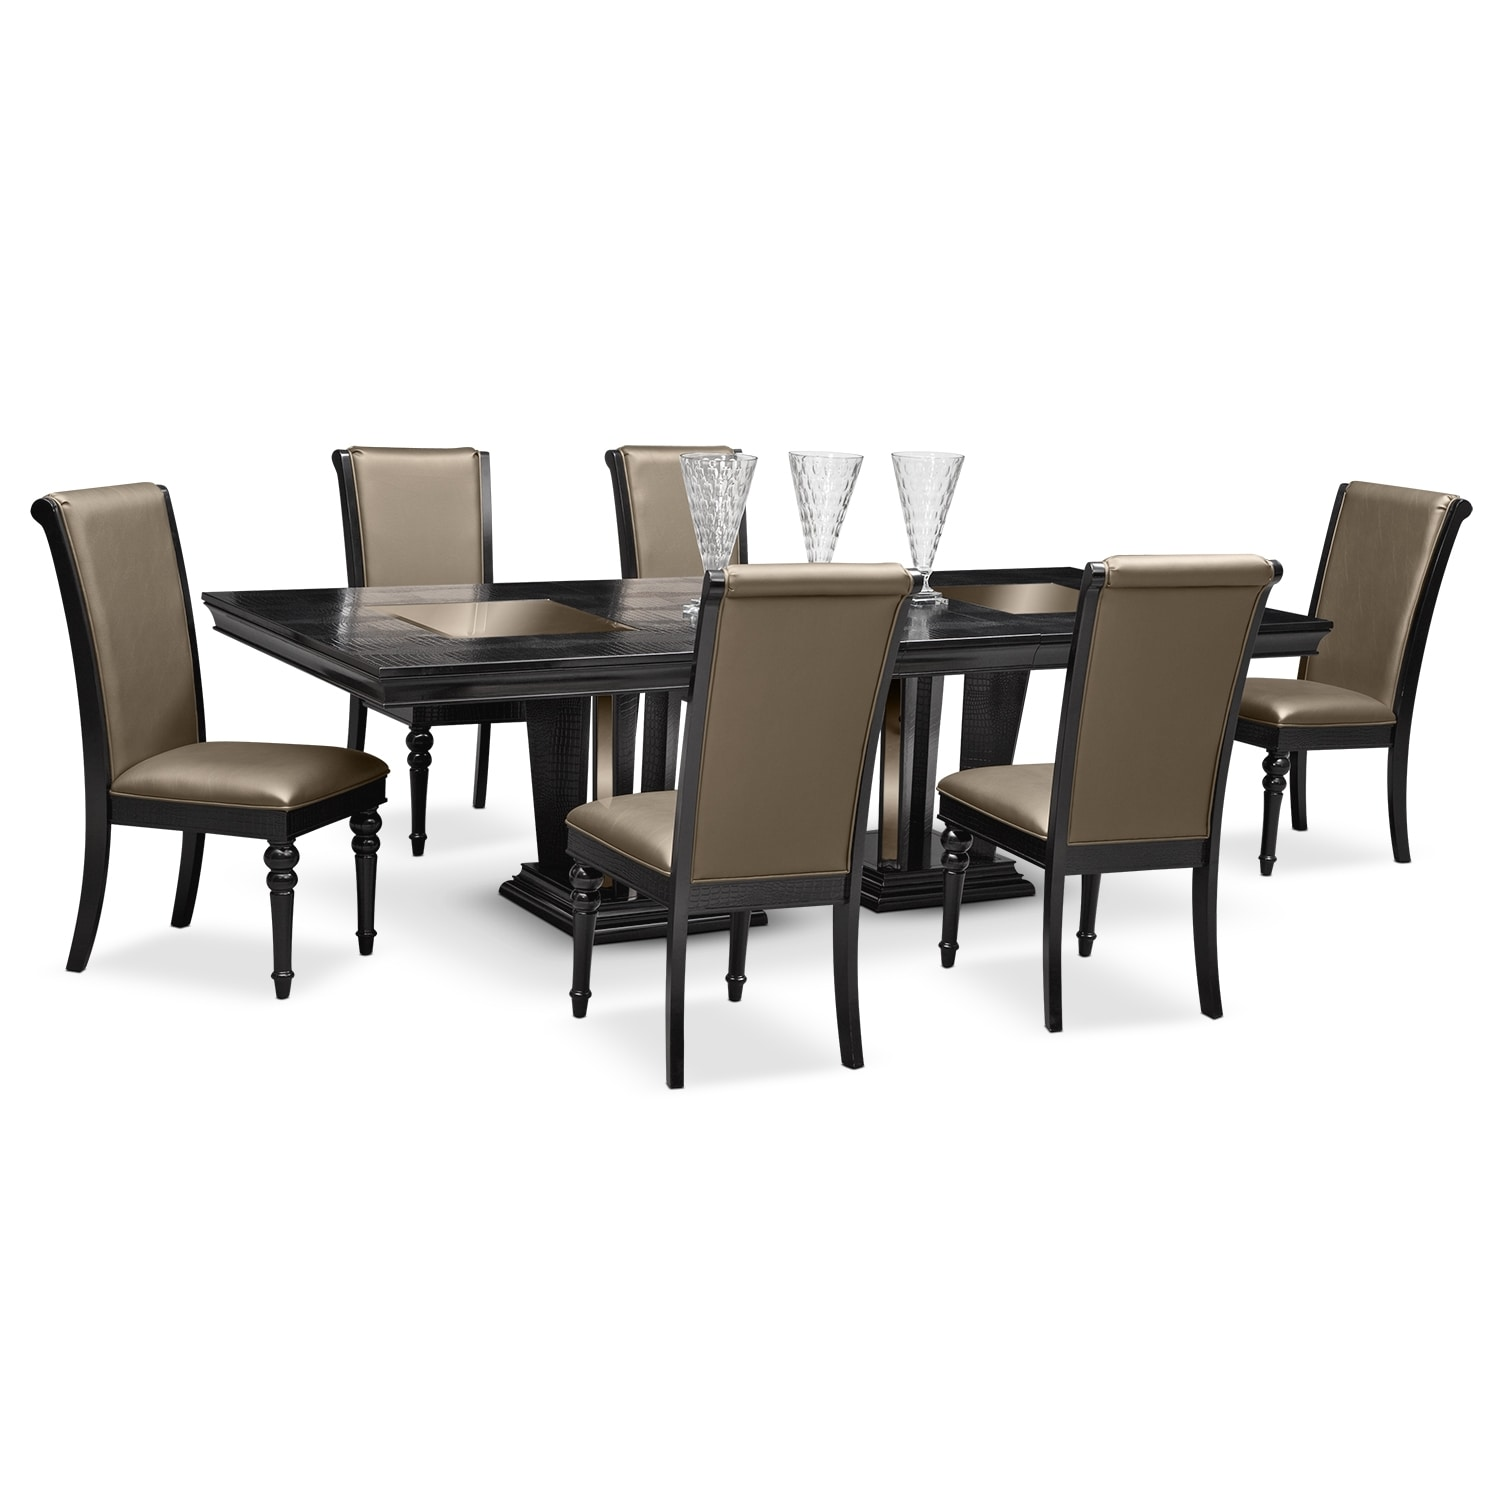 Paradiso 7 Pc. Dining Room